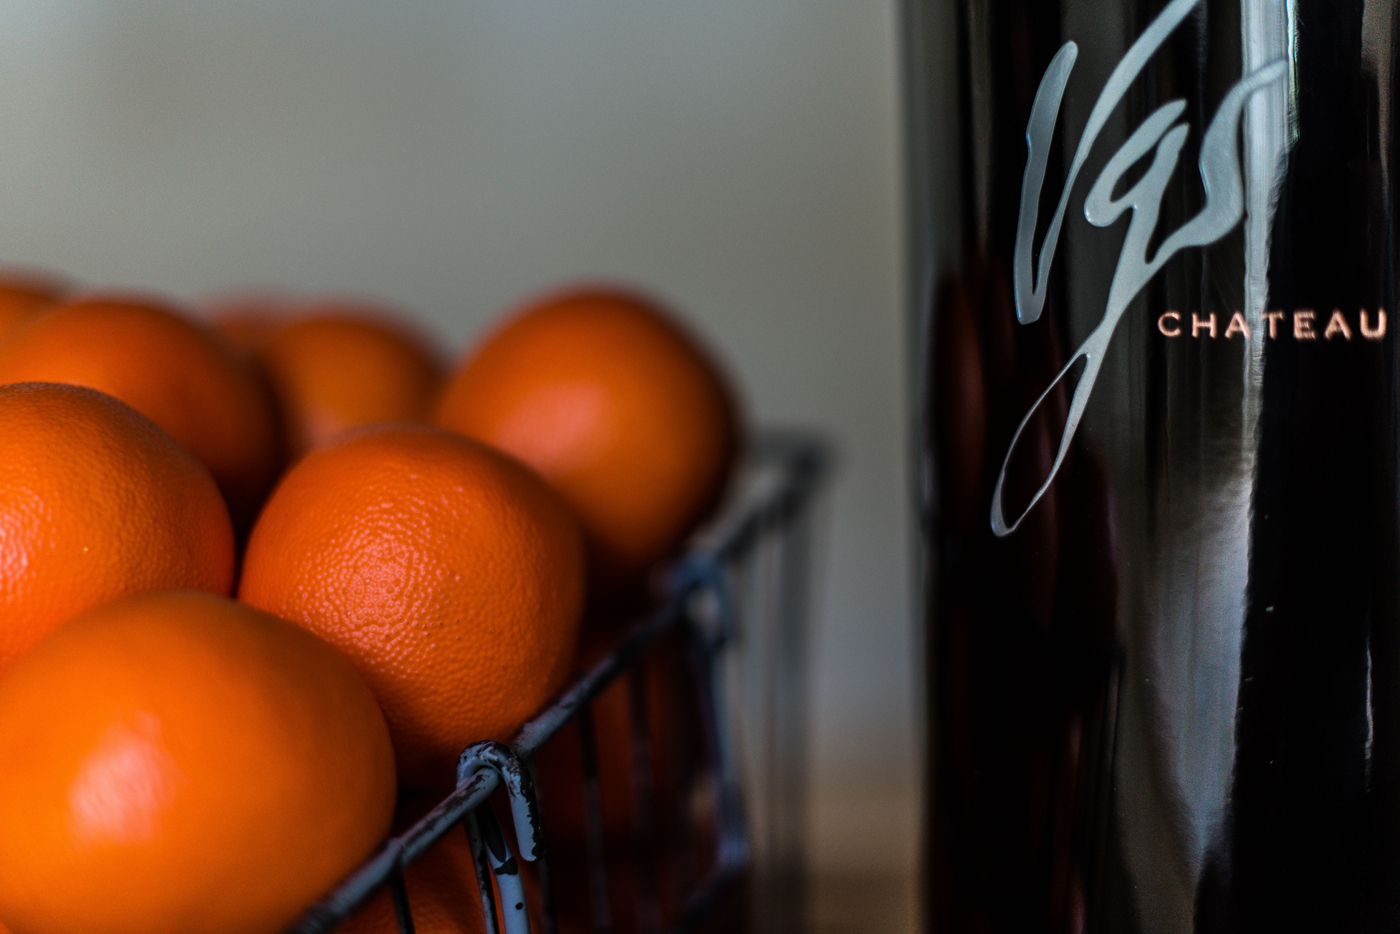 Oranges on display with a VGS Chateau Potelle wine bottle in their tasting house | Savage Interior Design